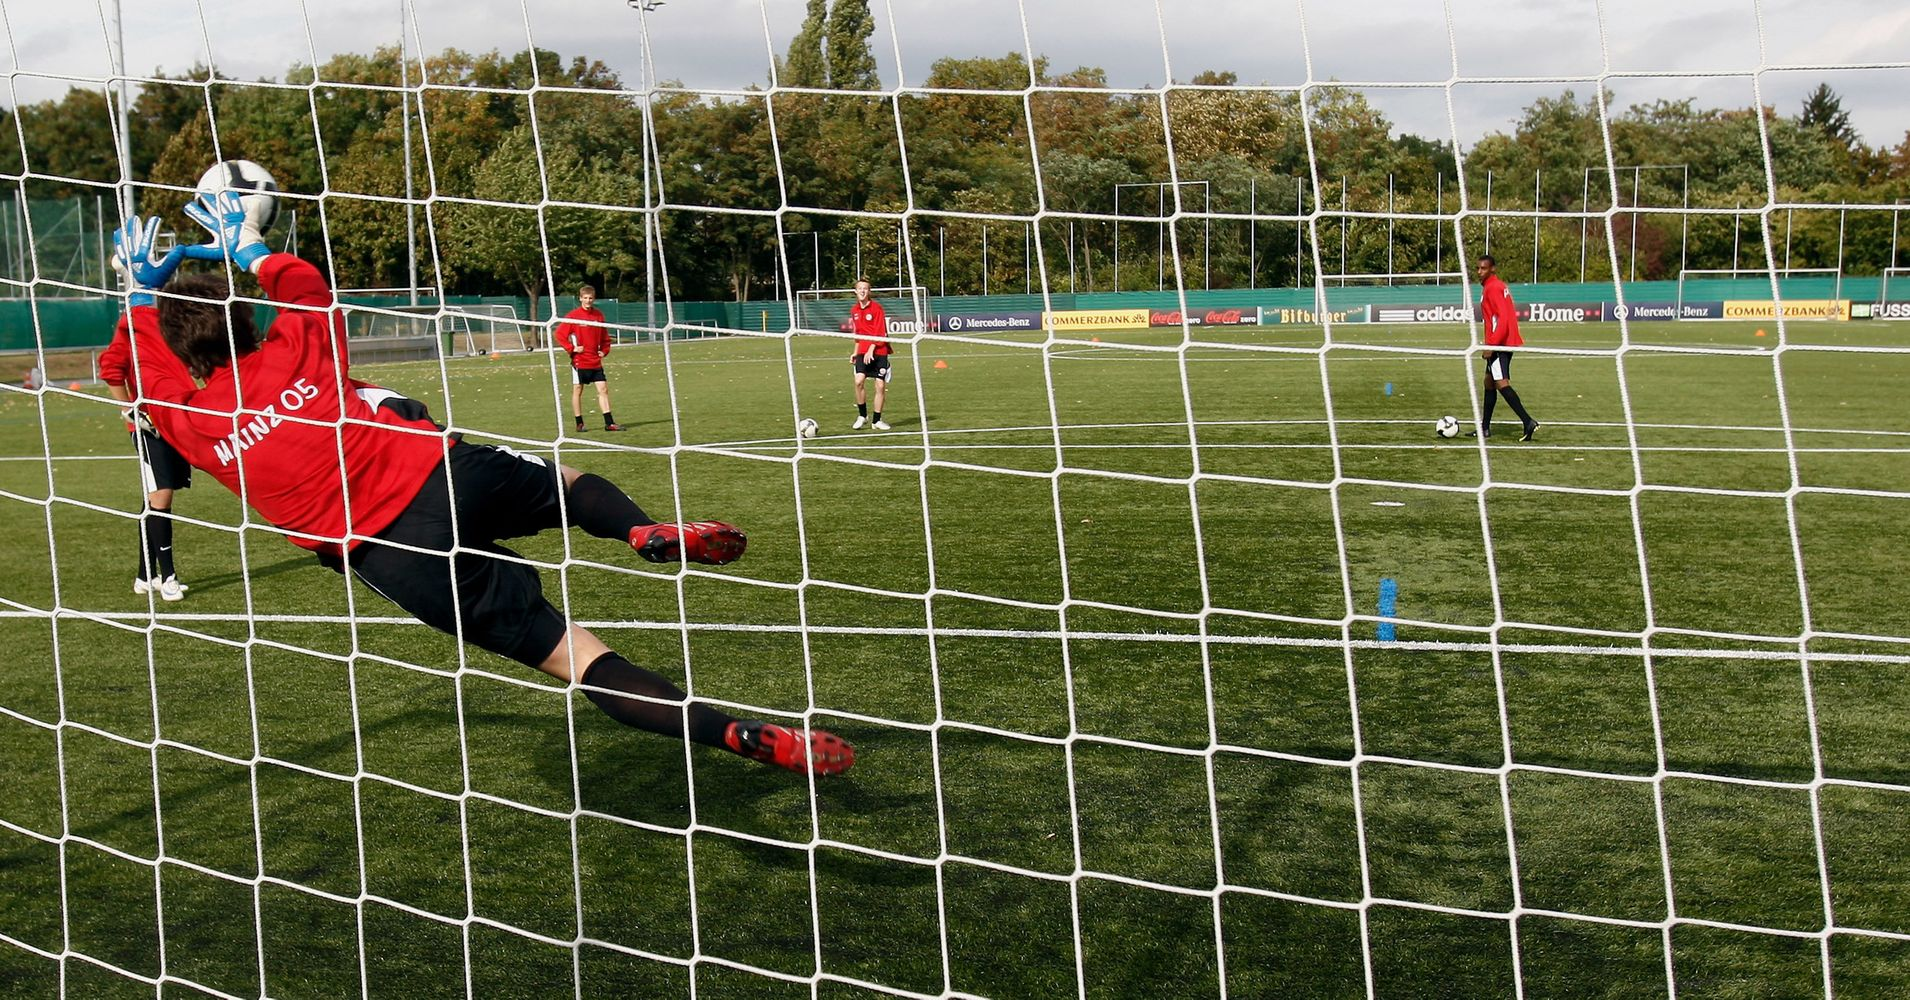 Worries Mount Over Potential Link Between Artificial Turf